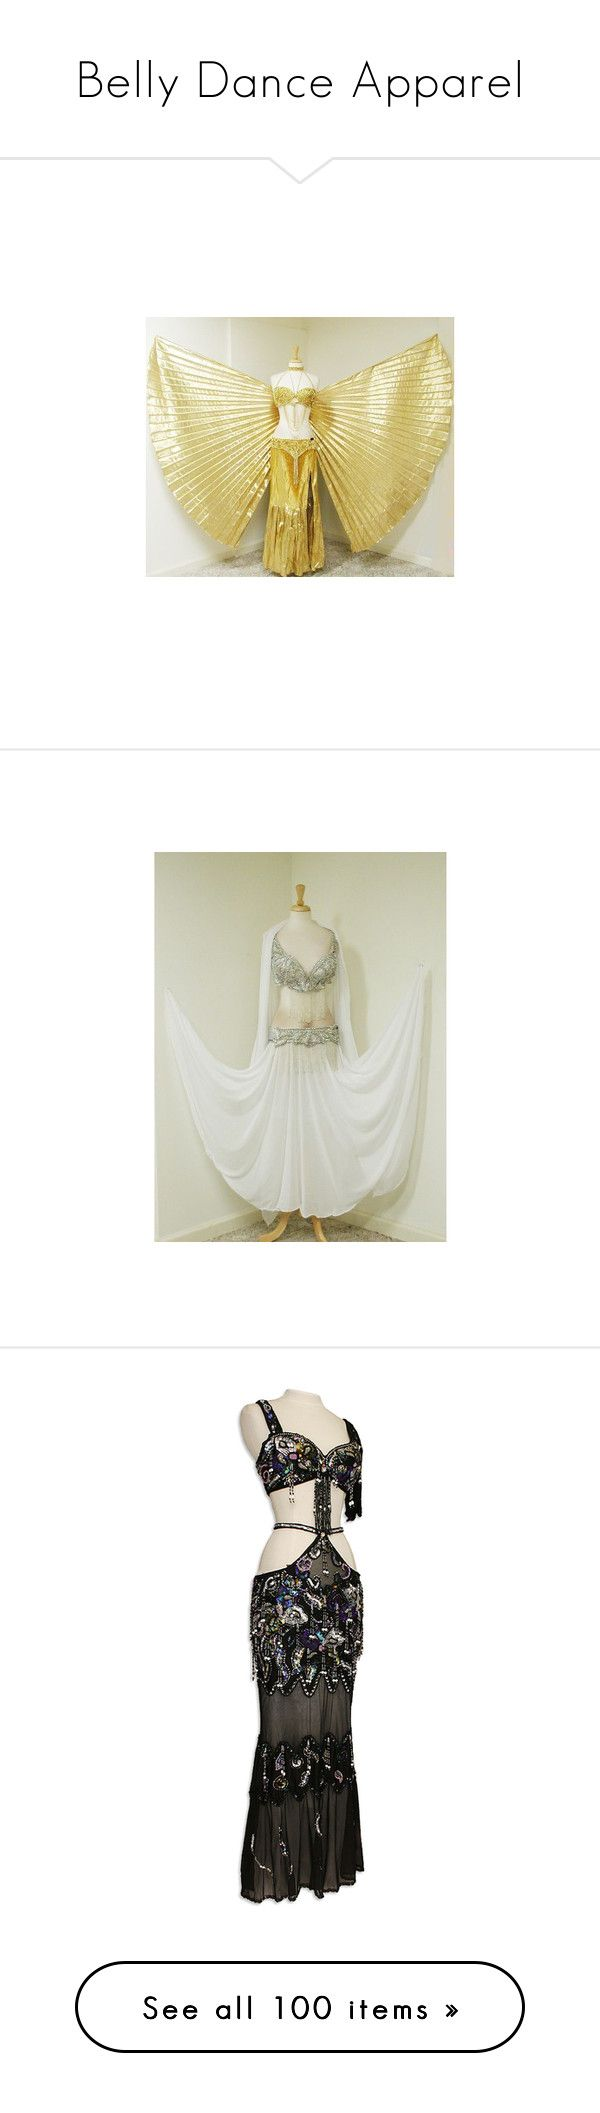 """Belly Dance Apparel"" by blasted-blast-ended-skrewts ❤ liked on Polyvore featuring dance costumes, dresses, costumes, belly dancing, costum, belly dancer halloween costume, belly dancer costume, gown, belly dance and egyptian costumes"